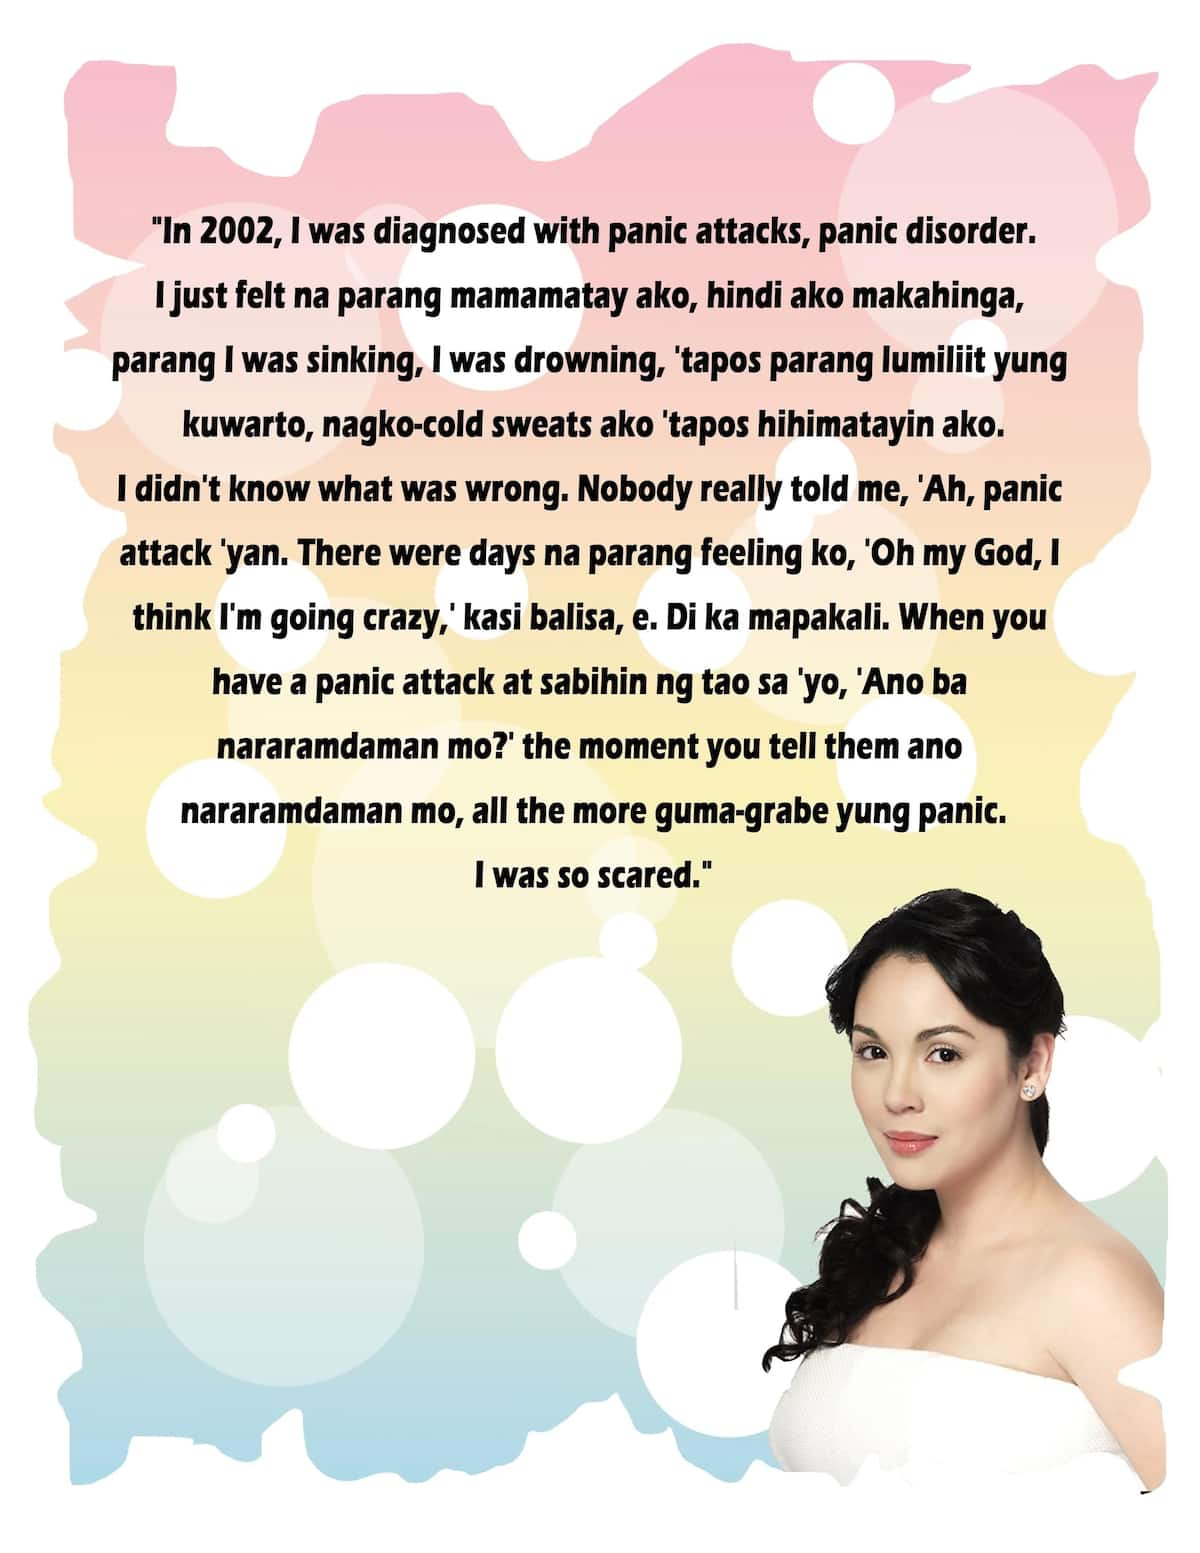 'Oh my God, I think I'm going crazy,' Claudine Barretto reveals panic disorder started after Rico Yan's death